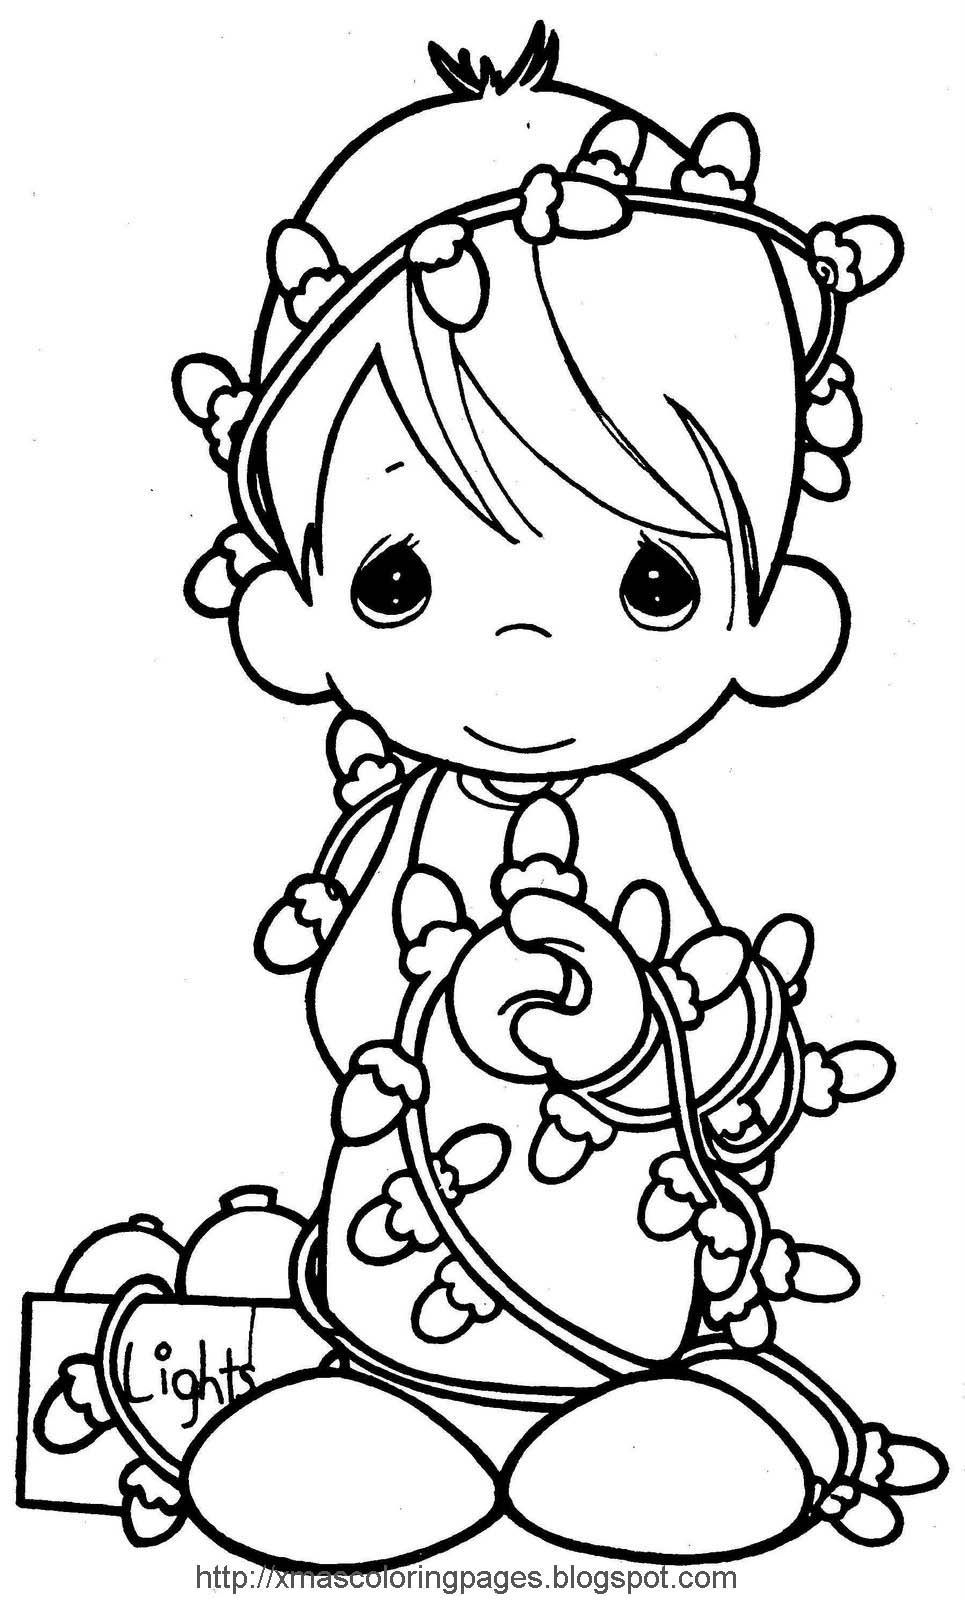 free coloring book pages christmas - photo#18